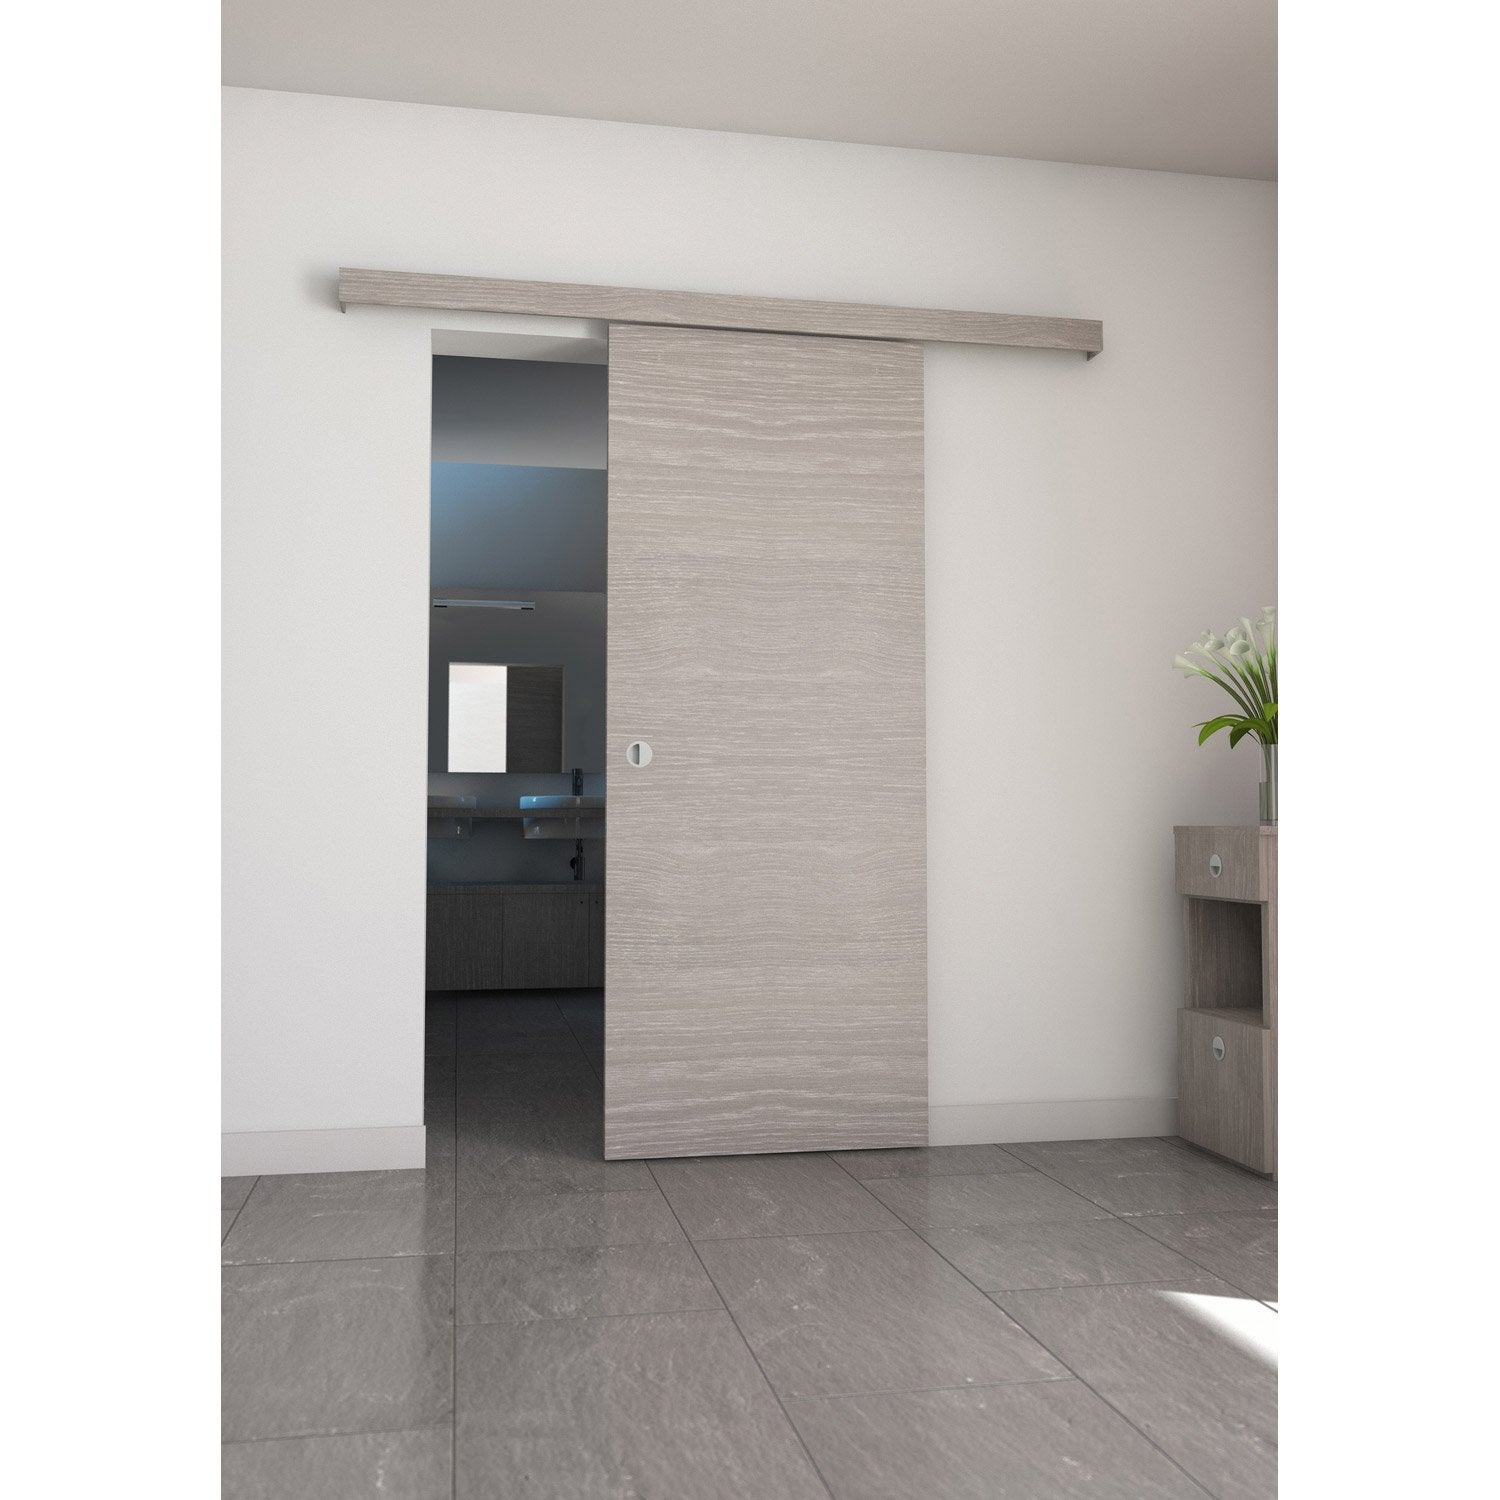 Ensemble porte coulissante coulicool mdf rev tu aluminium for Porte coulissante miroir leroy merlin